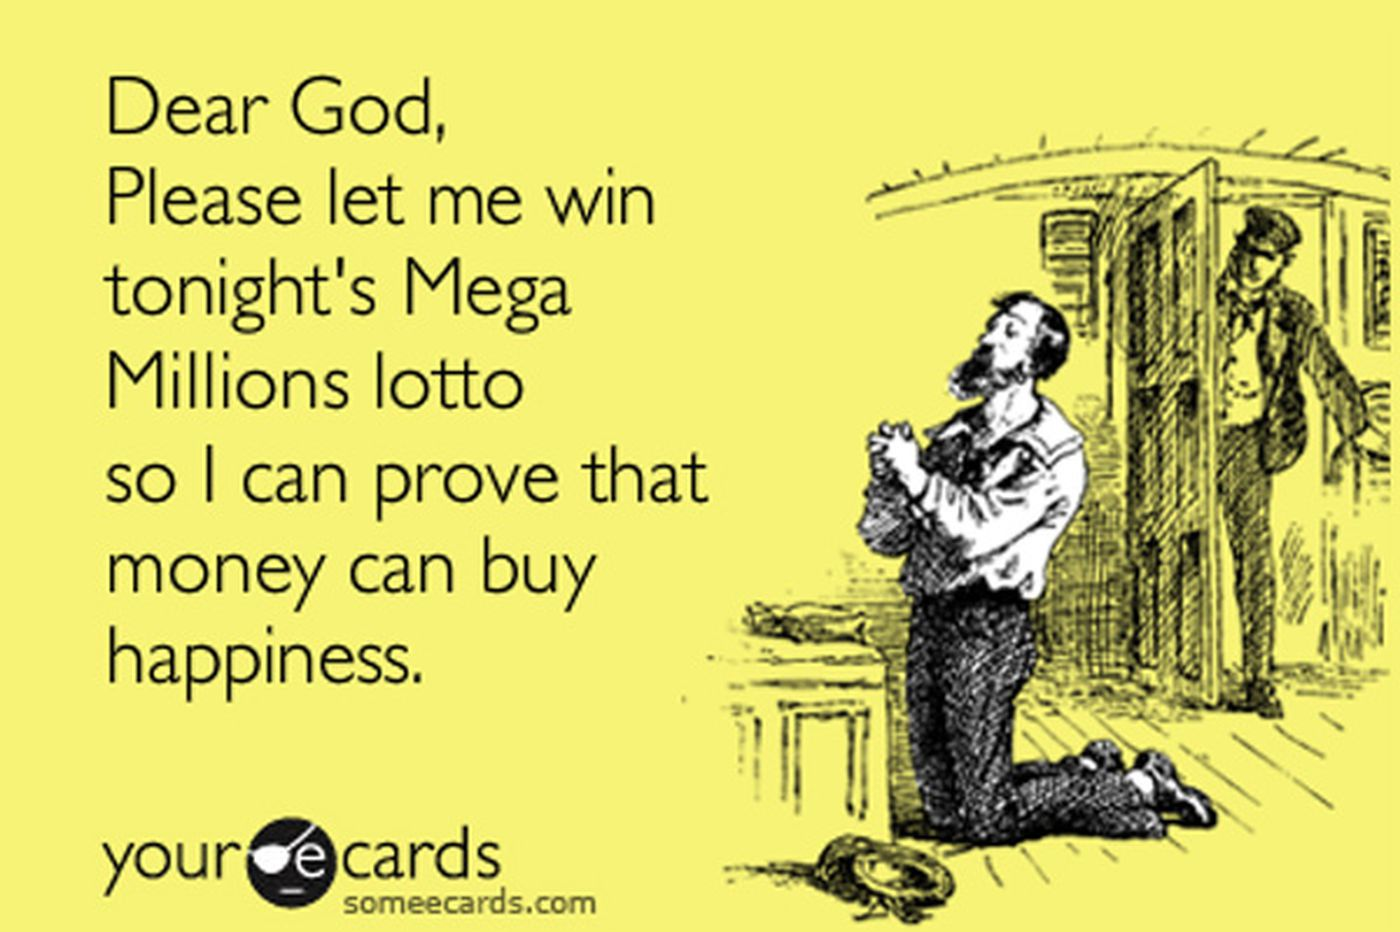 Mega Millions jackpot: Lord, hear our prayers